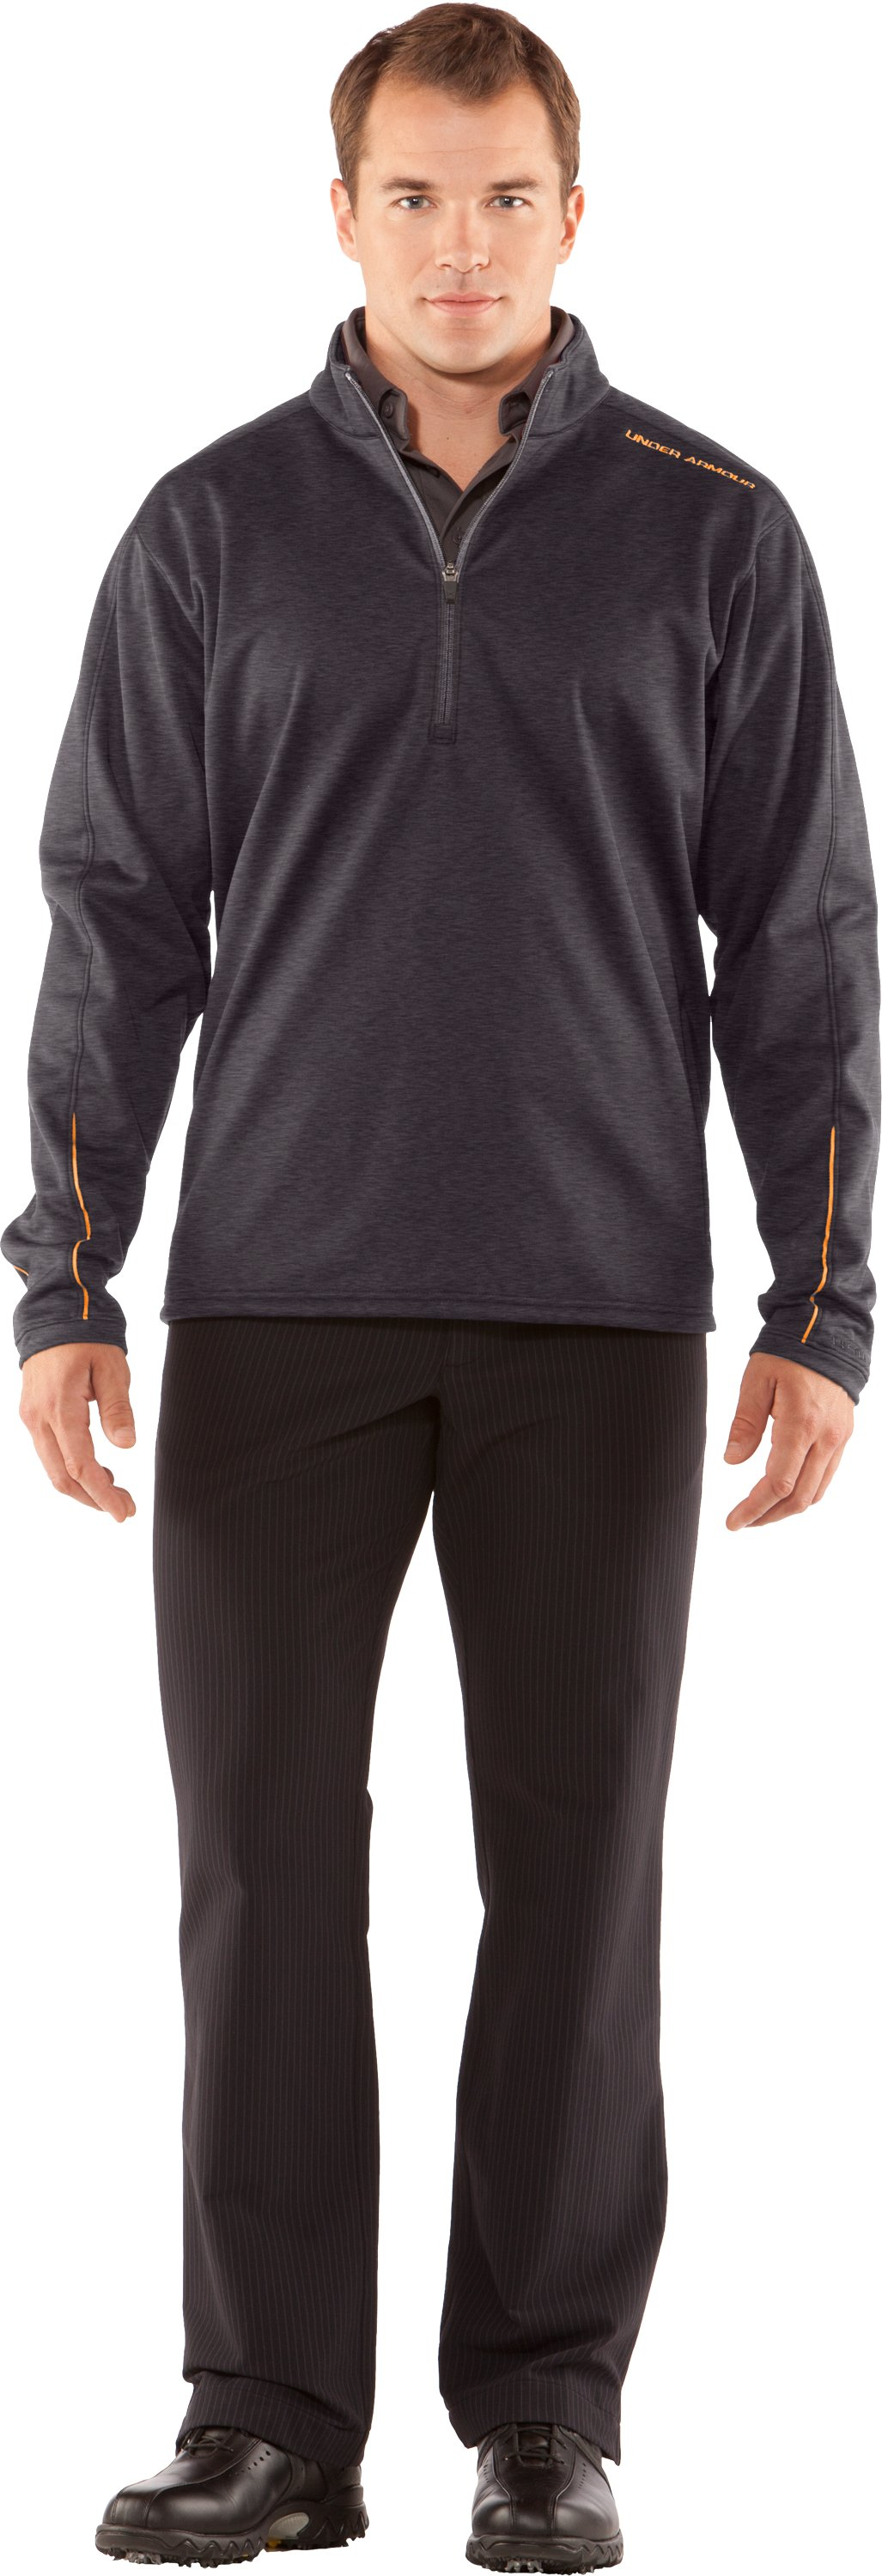 Men's ColdGear® Elements Storm ¼ Zip Jacket, Carbon Heather, Front